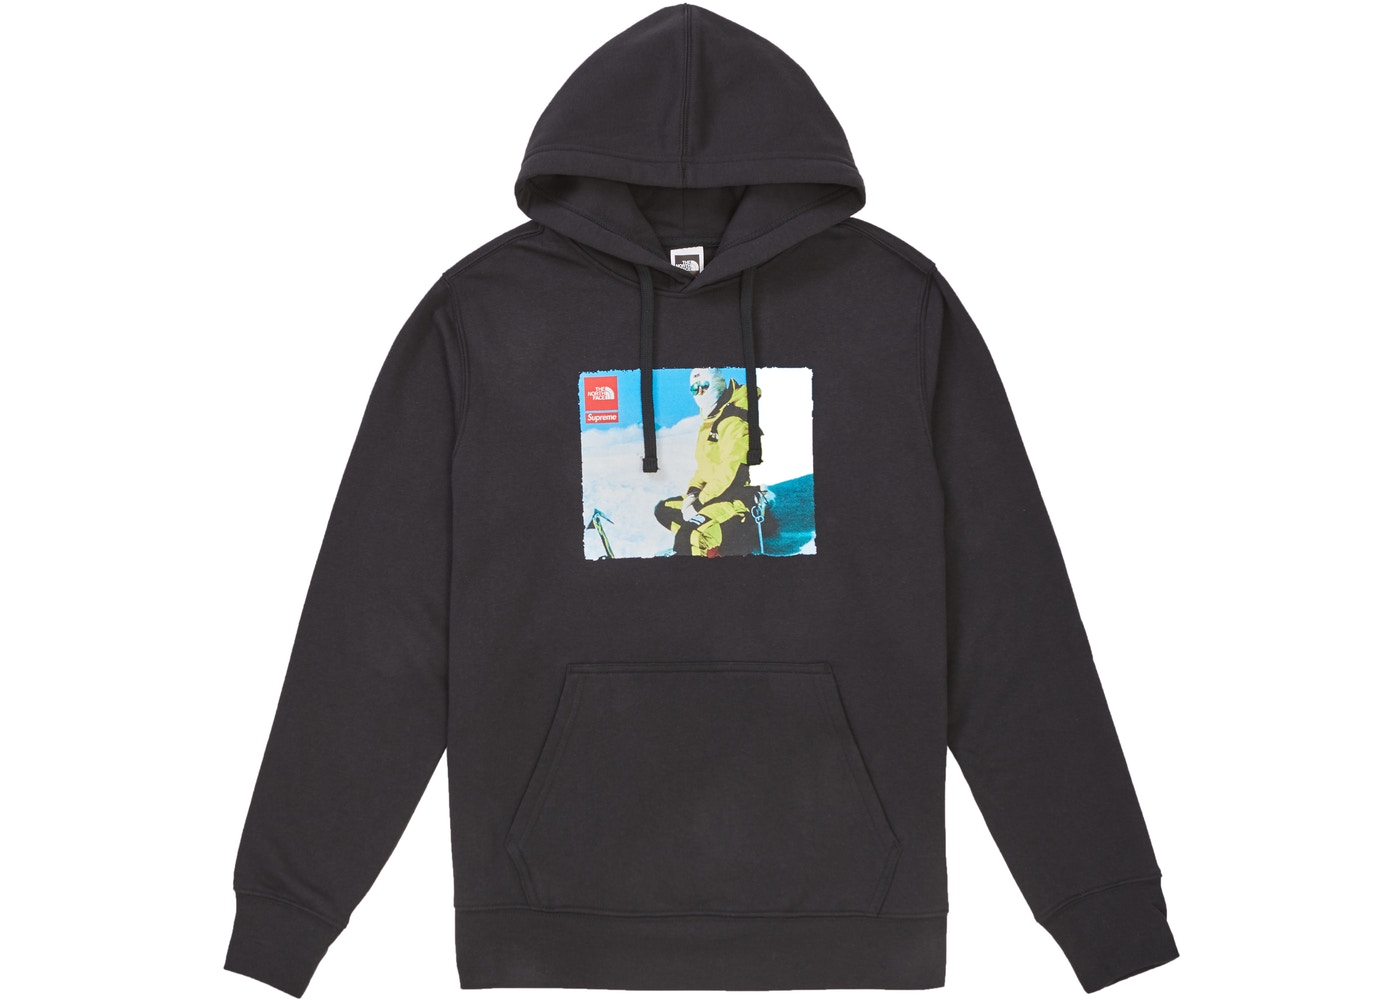 b8a7c28114 Supreme The North Face Photo Hooded Sweatshirt Black - FW18